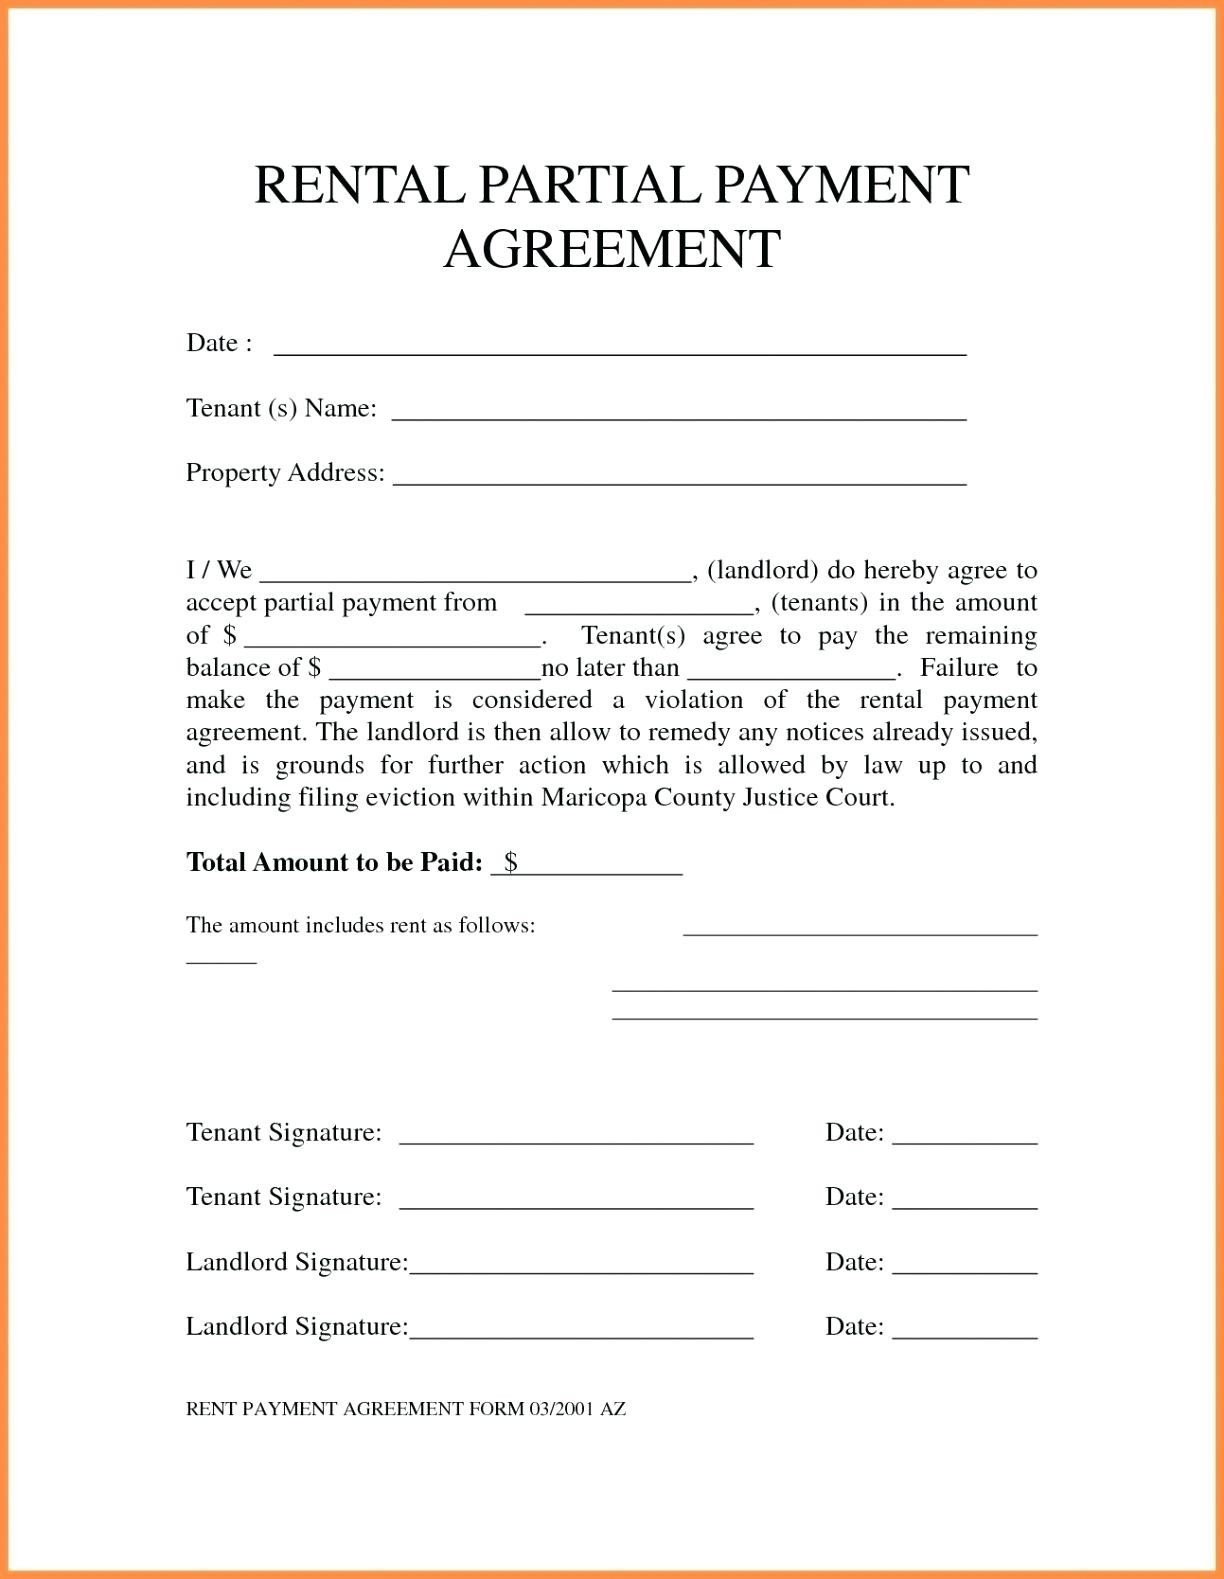 Routine Inspection Letter to Tenant Template - Property Inspection Letter to Tenant Uk Archives Fresh Property